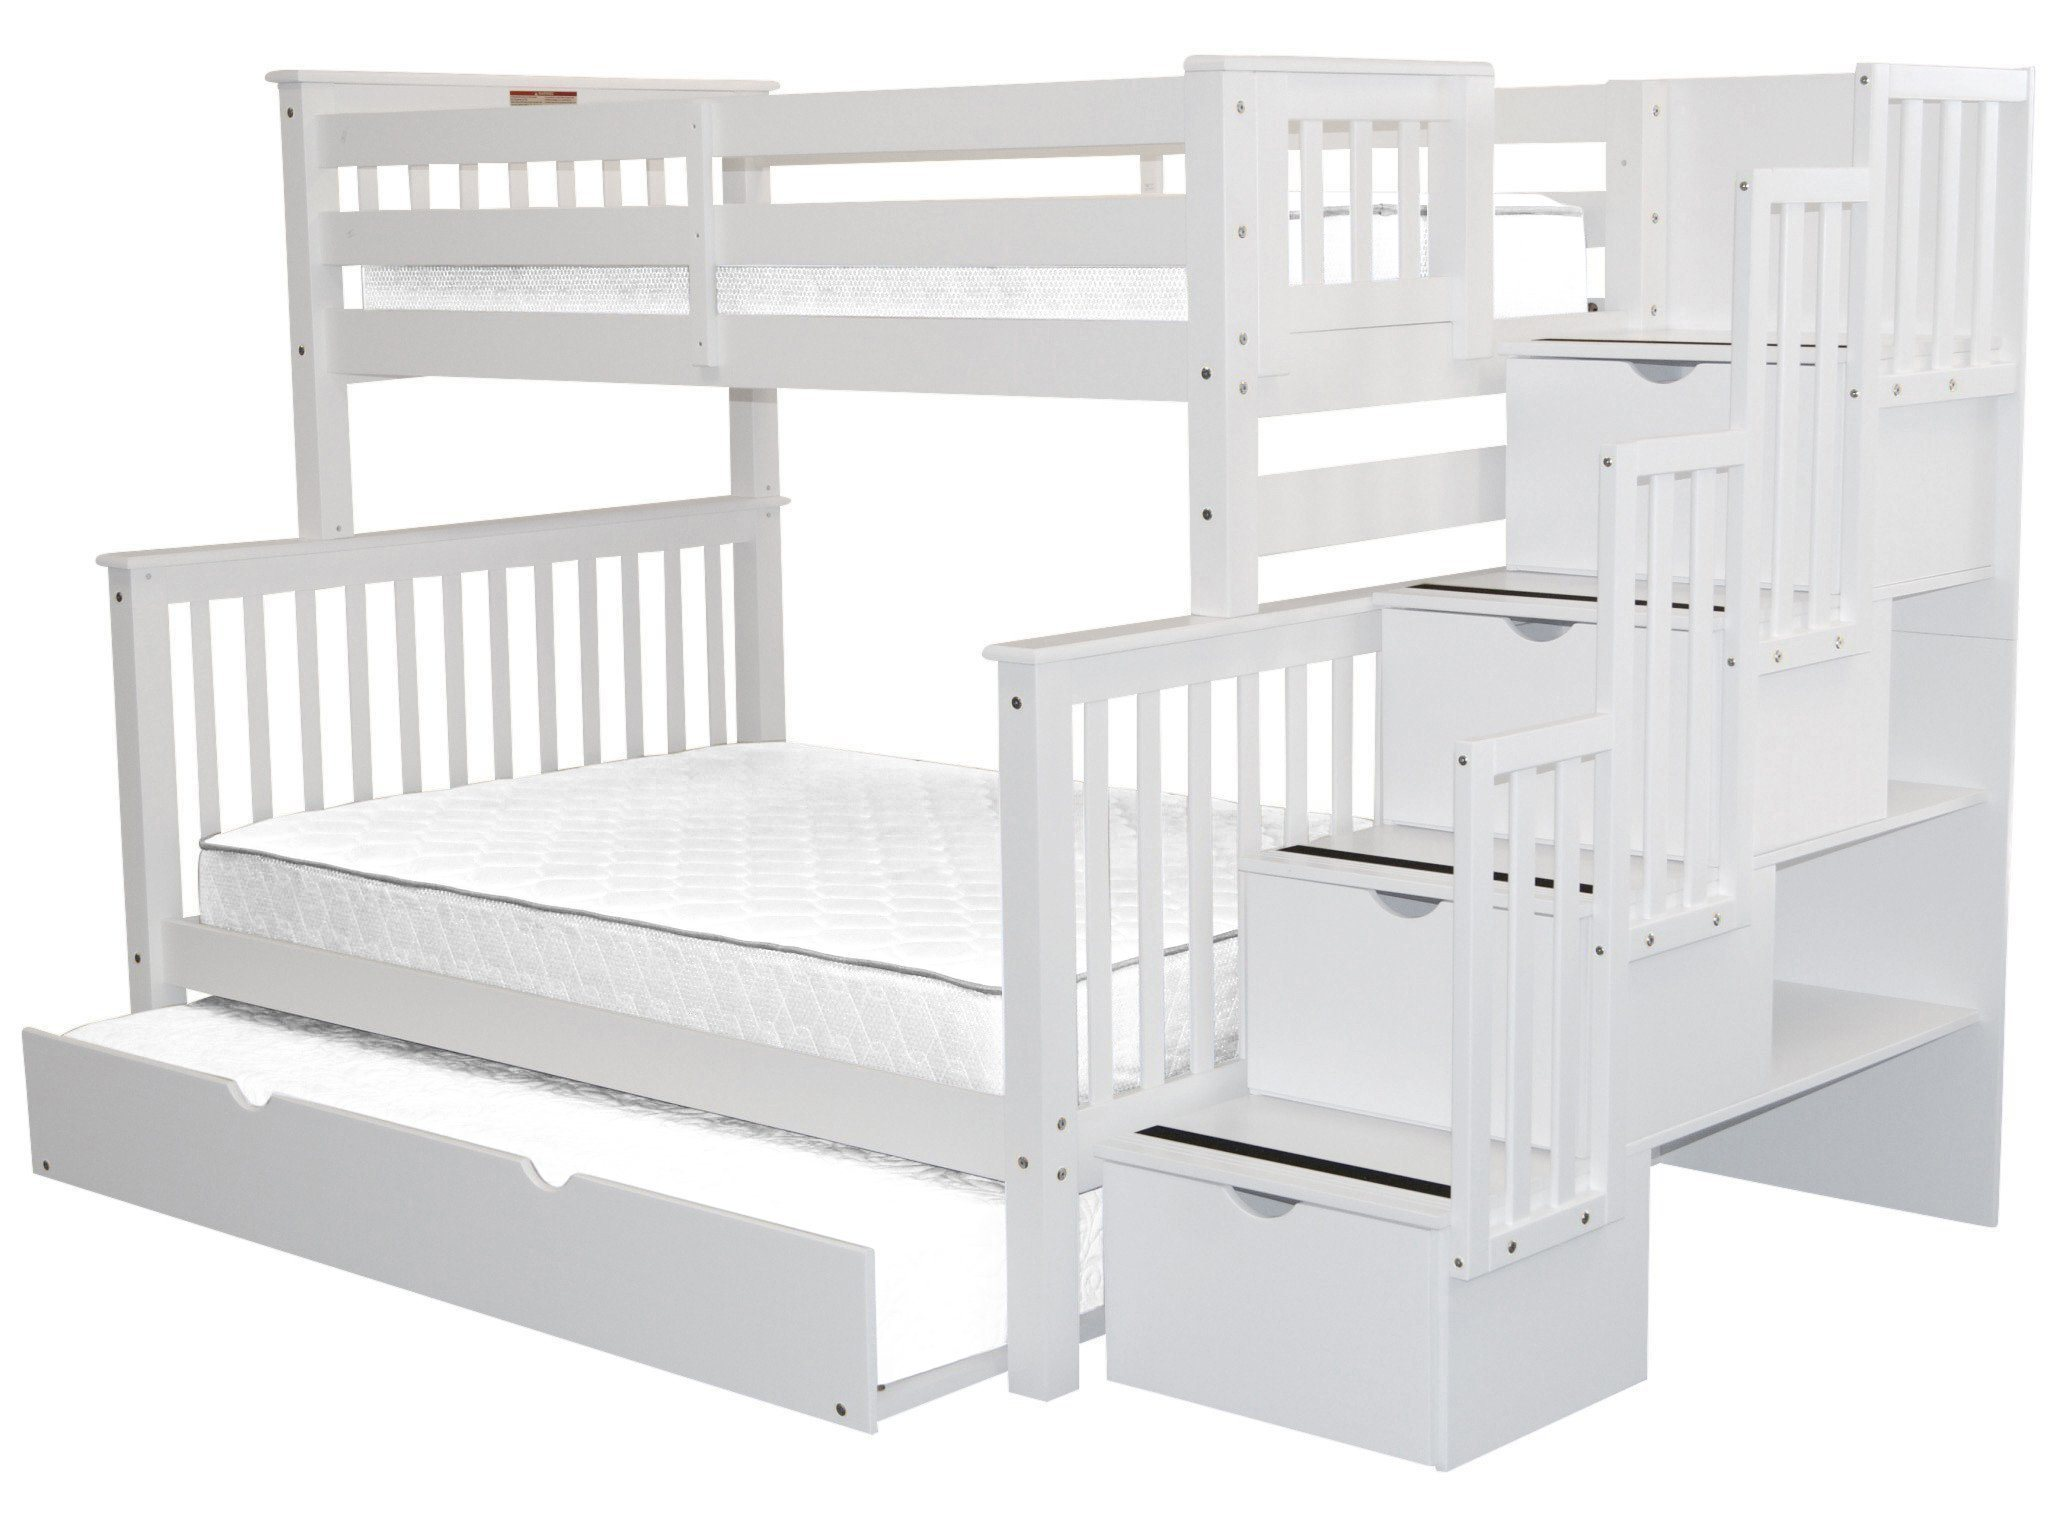 Ordinaire Bedz King Stairway Bunk Beds Twin Over Full With 4 Drawers In The Steps And  A Full Trundle White